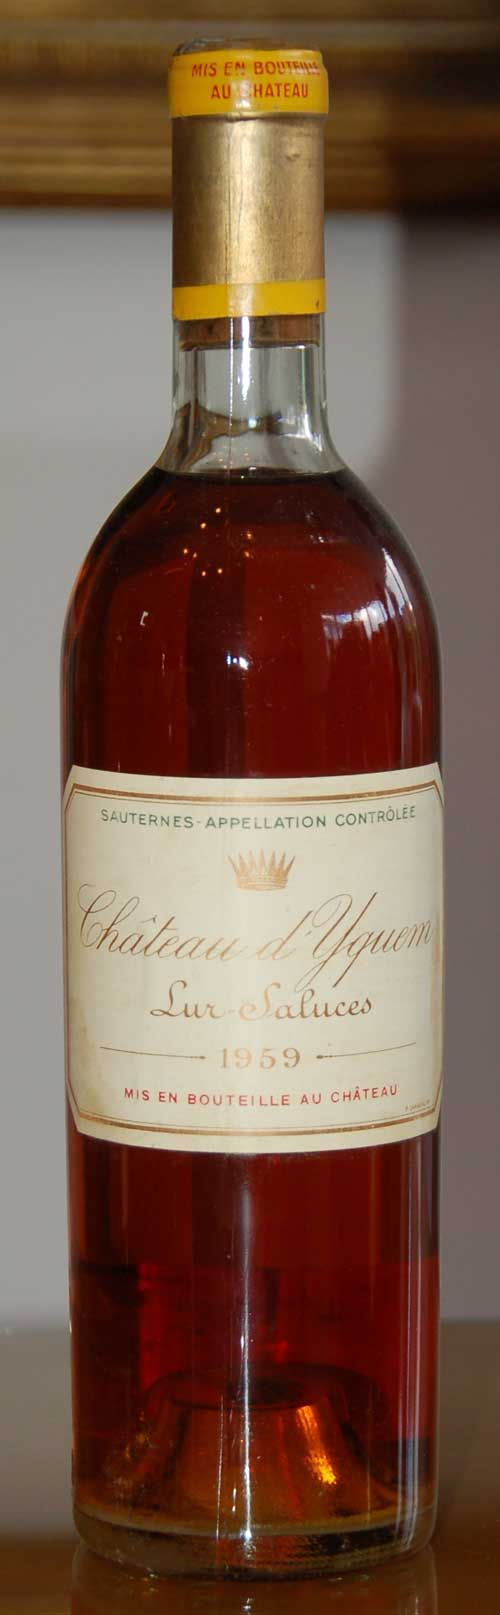 Vintage Yquem From Finest Rarest Wine Bottle Just Wine Wine Tasting